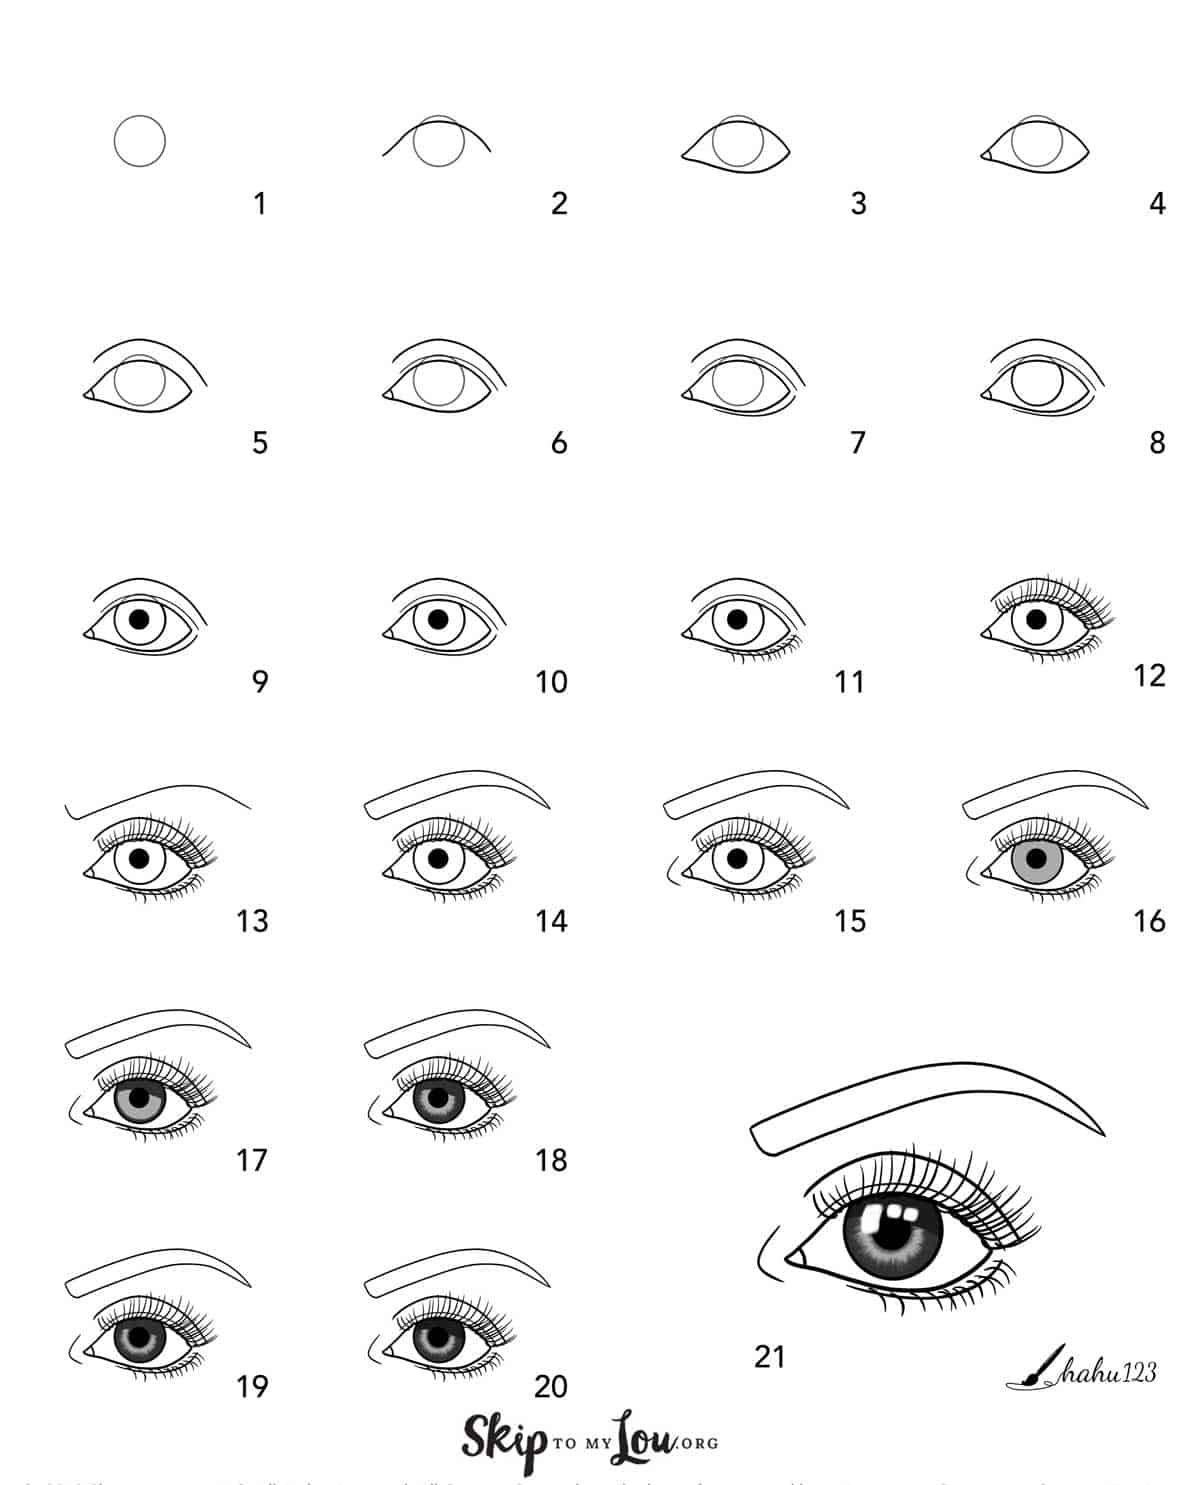 step by step drawing guide for eye drawing